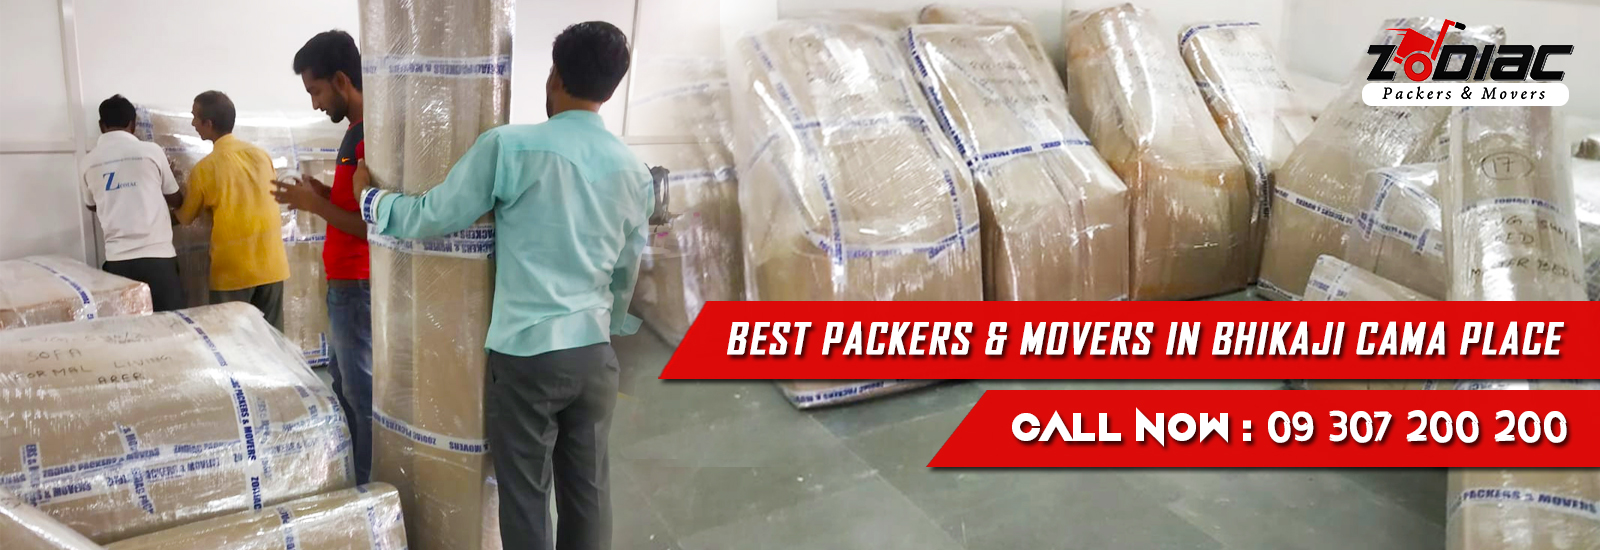 Packers and Movers in Bhikaji Cama Place